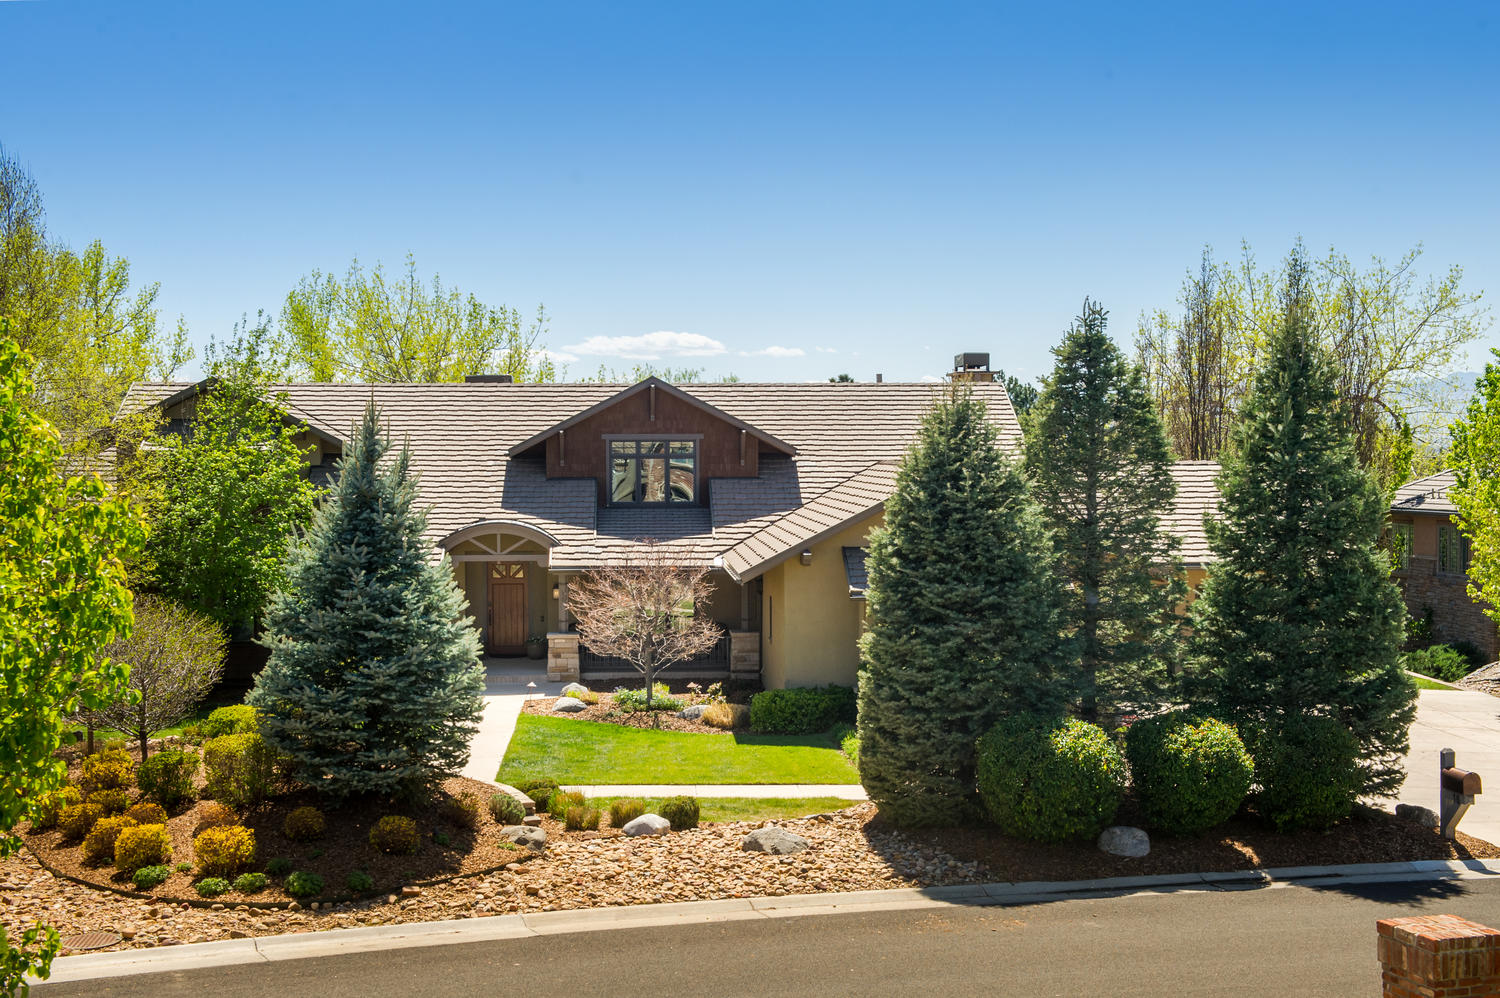 Single Family Home for Active at Meticulously maintained Main floor Master home in Cherry Hills Village 15 Covington Street Cherry Hills Village, Colorado 80113 United States